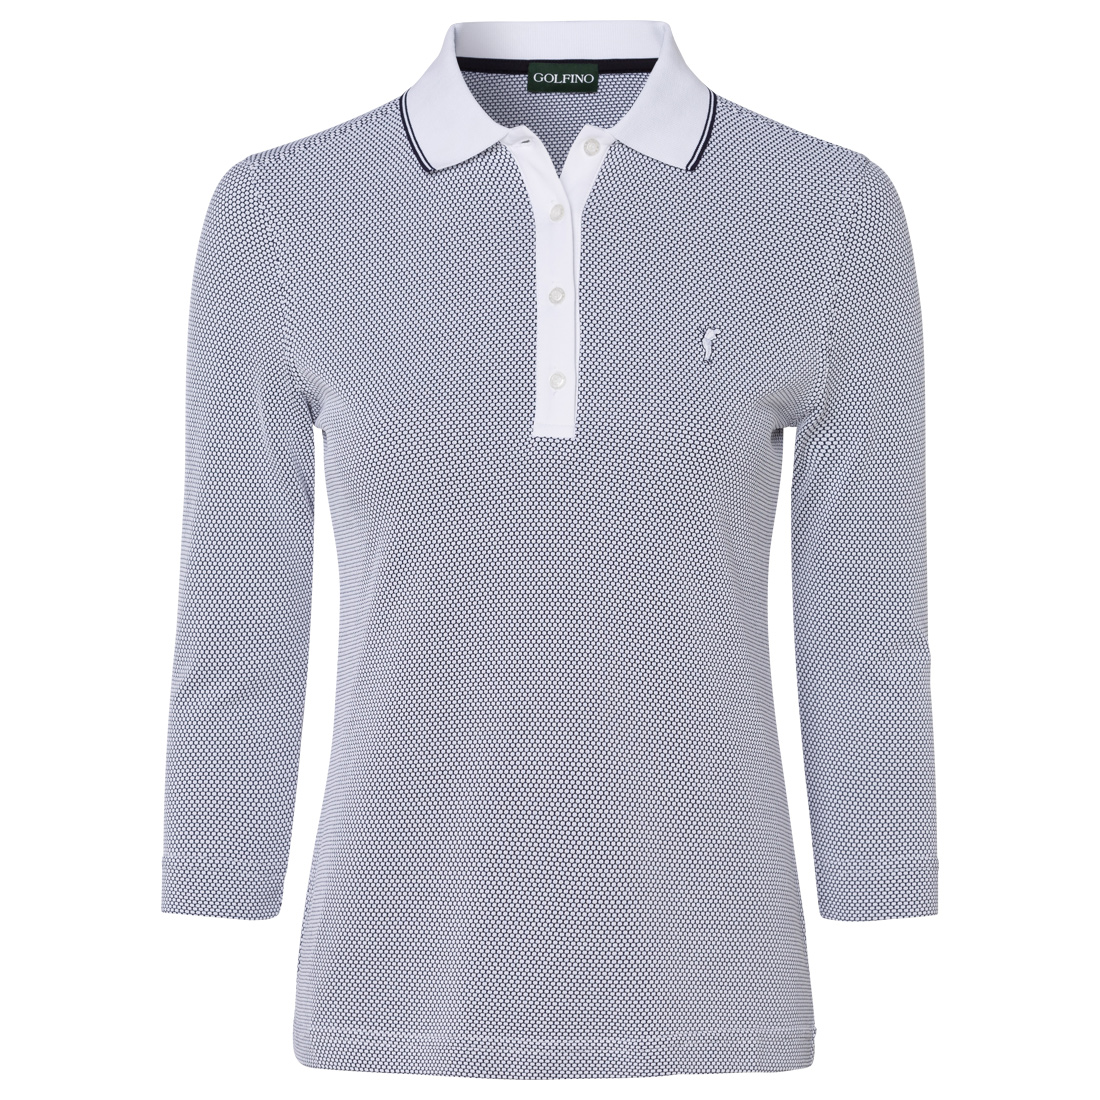 Ladies' 3/4 sleeve golf polo